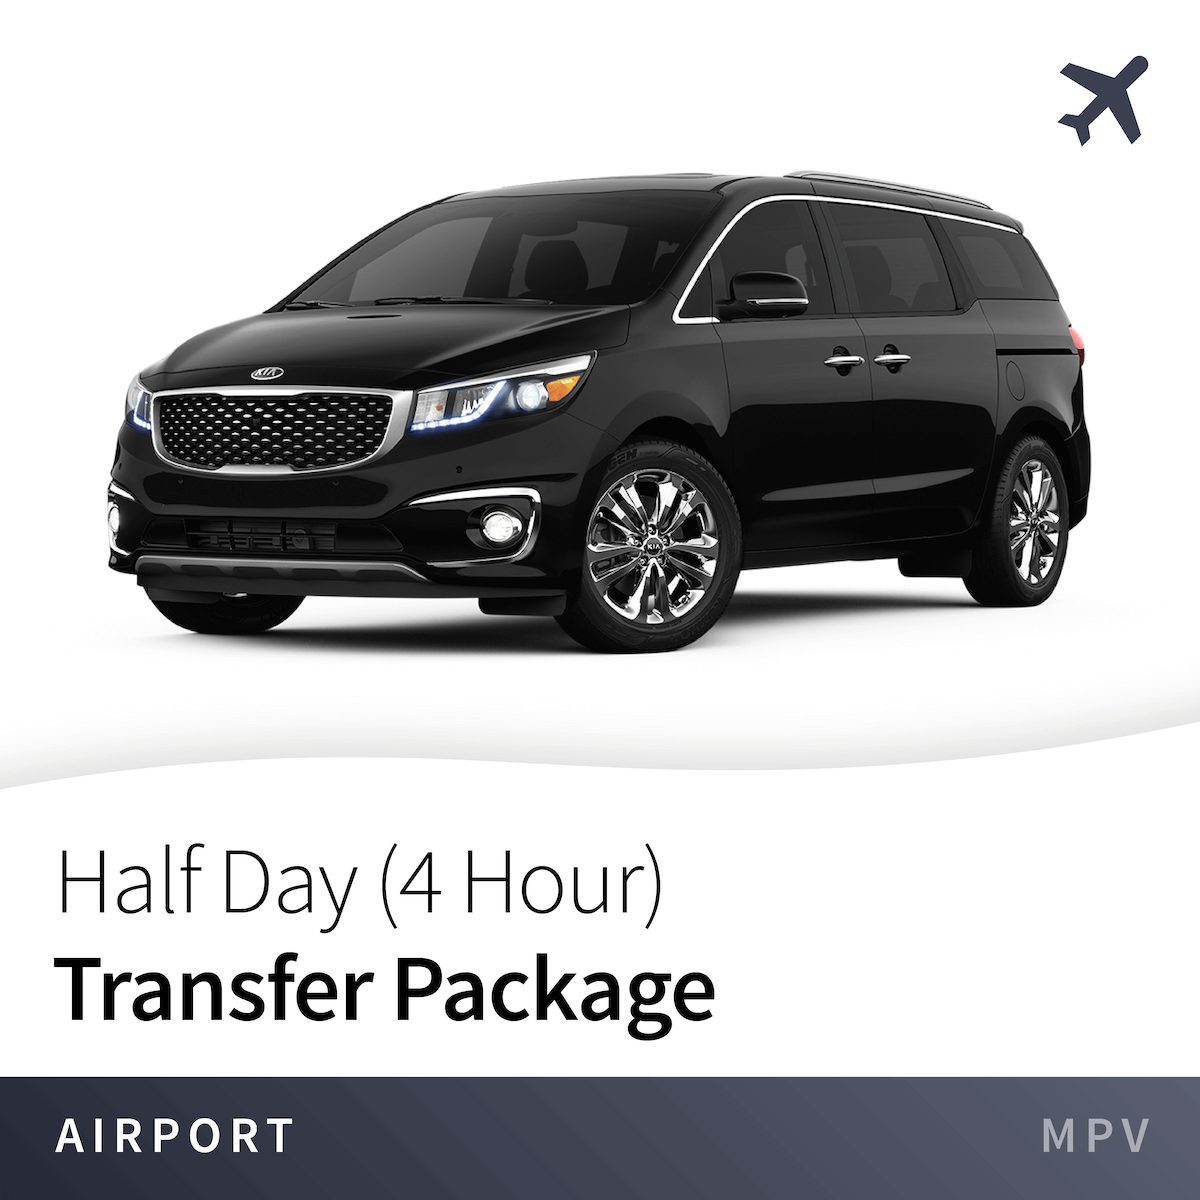 Half Day (4 Hour) Transfer Package From Airport - MPV 15